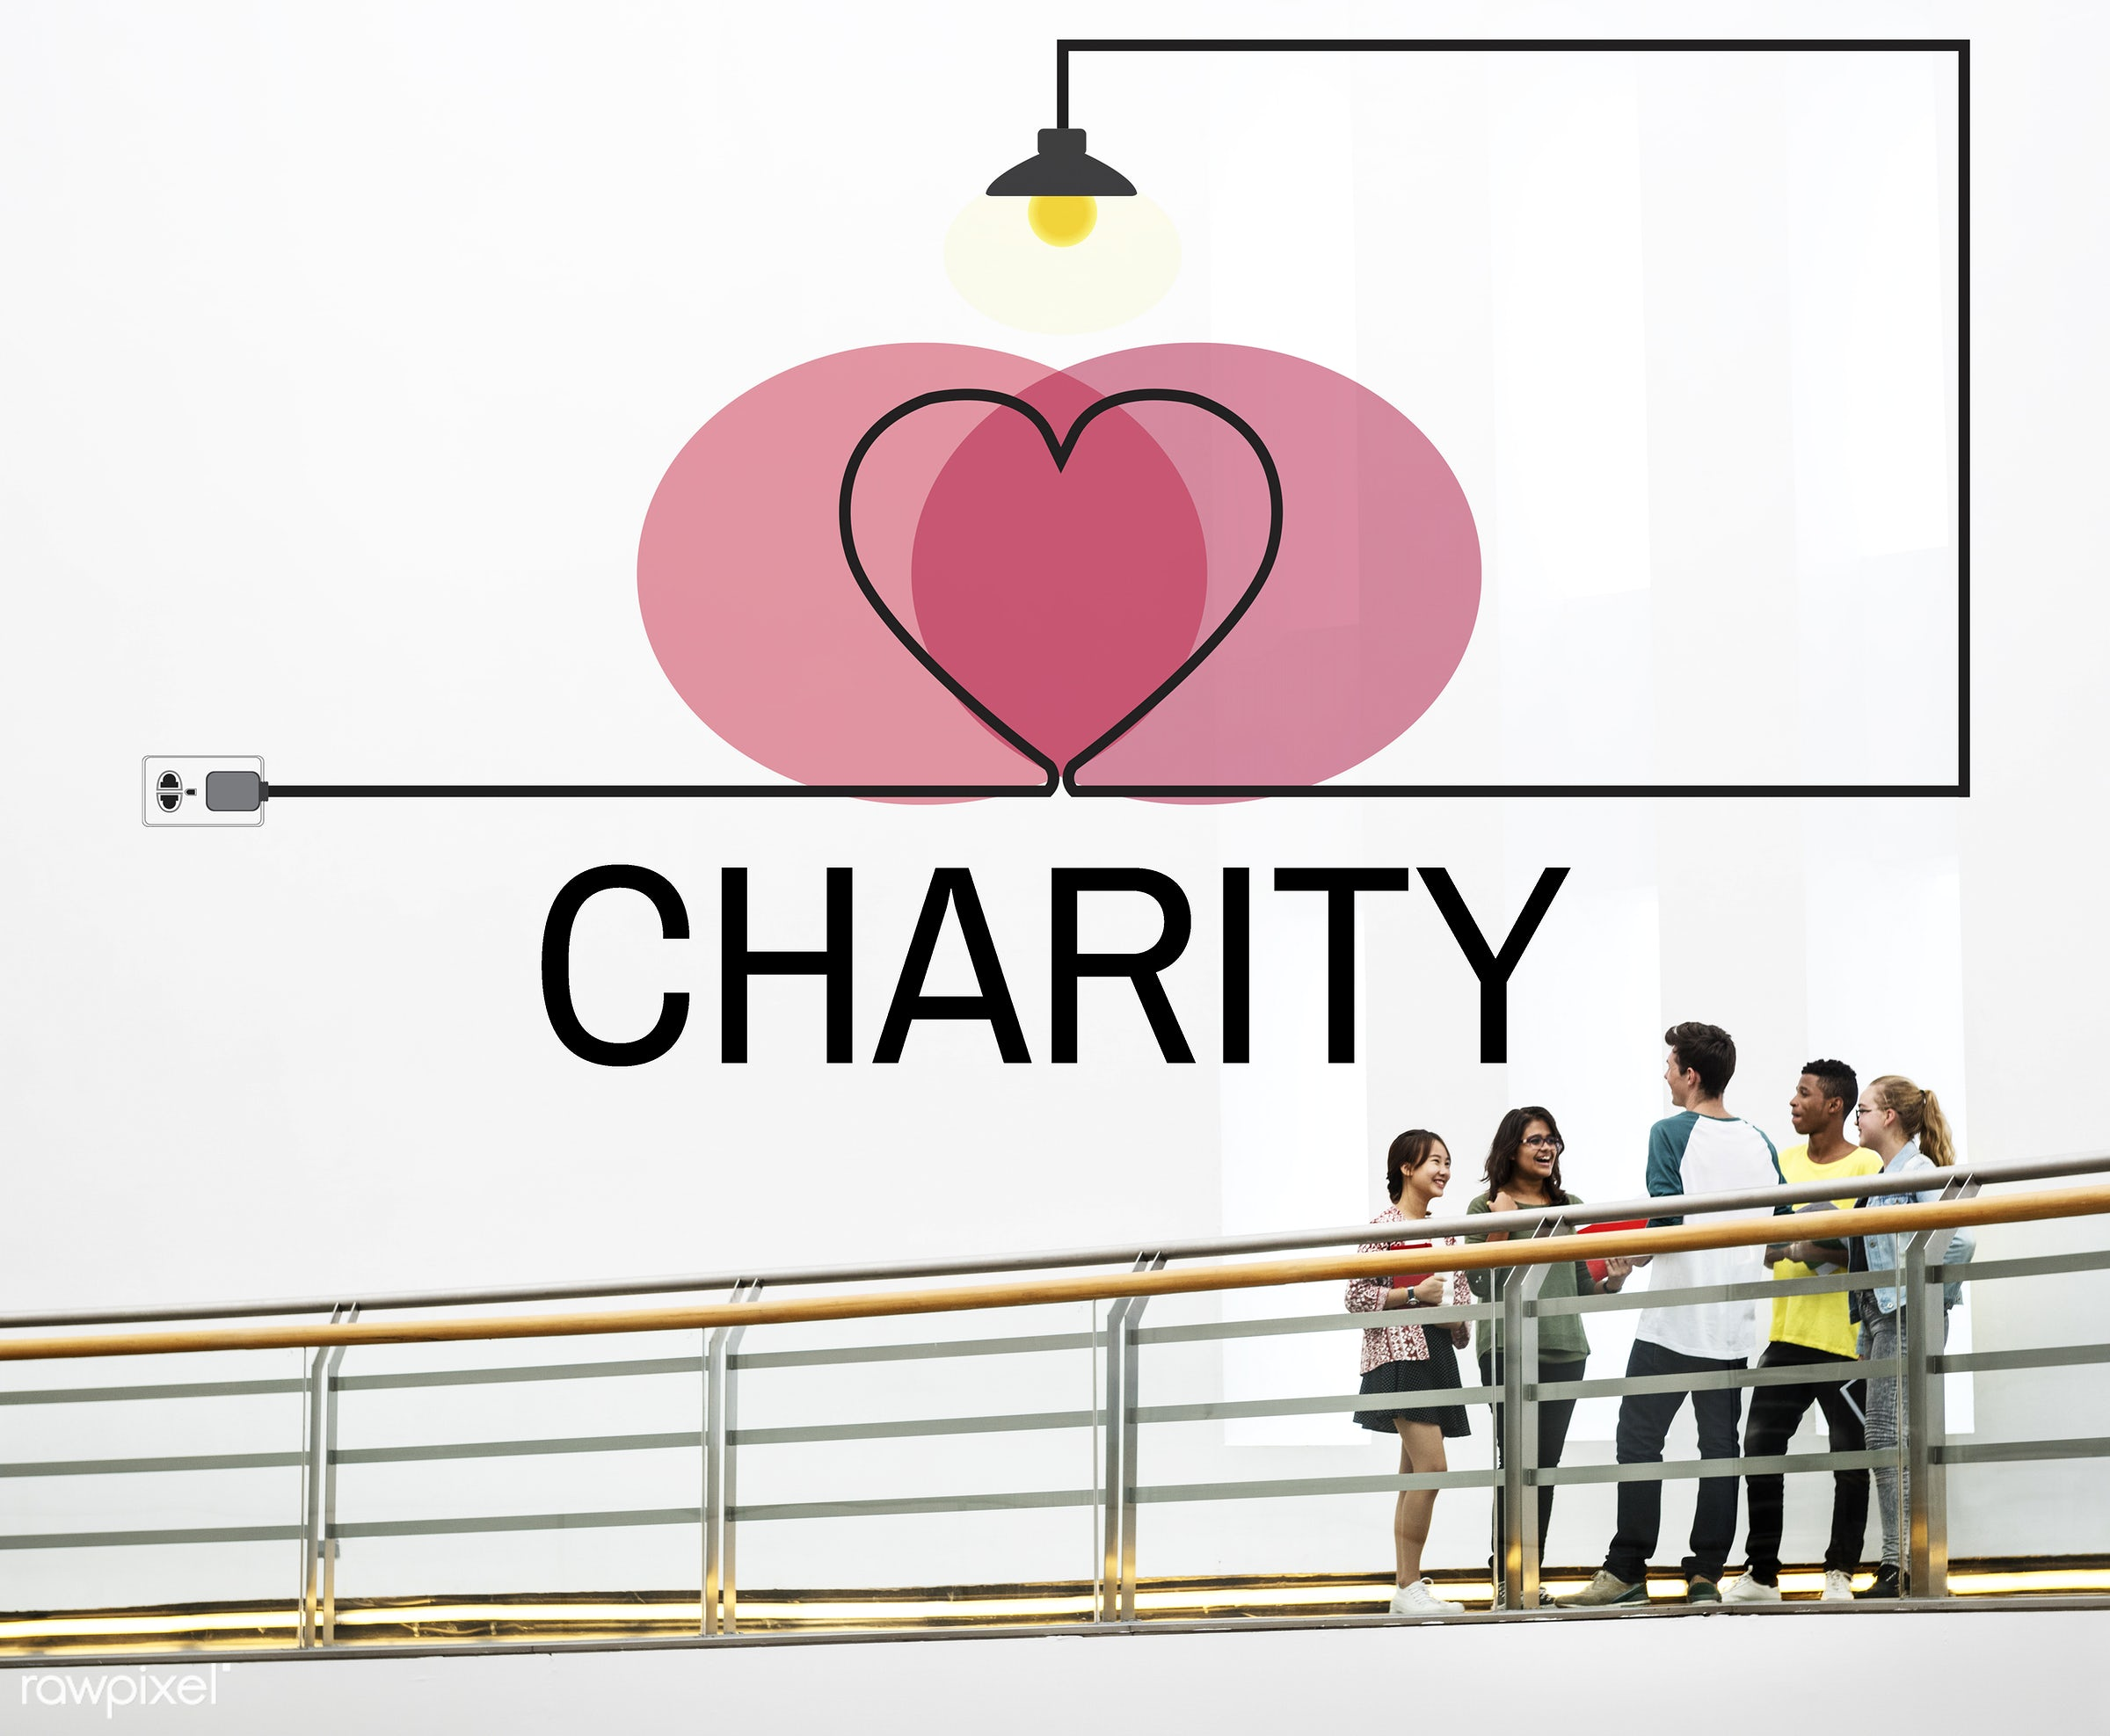 carrying, aid, assistance, book, books, boy, bridge, care, charitable, charity, community, contribute, donate, donations,...